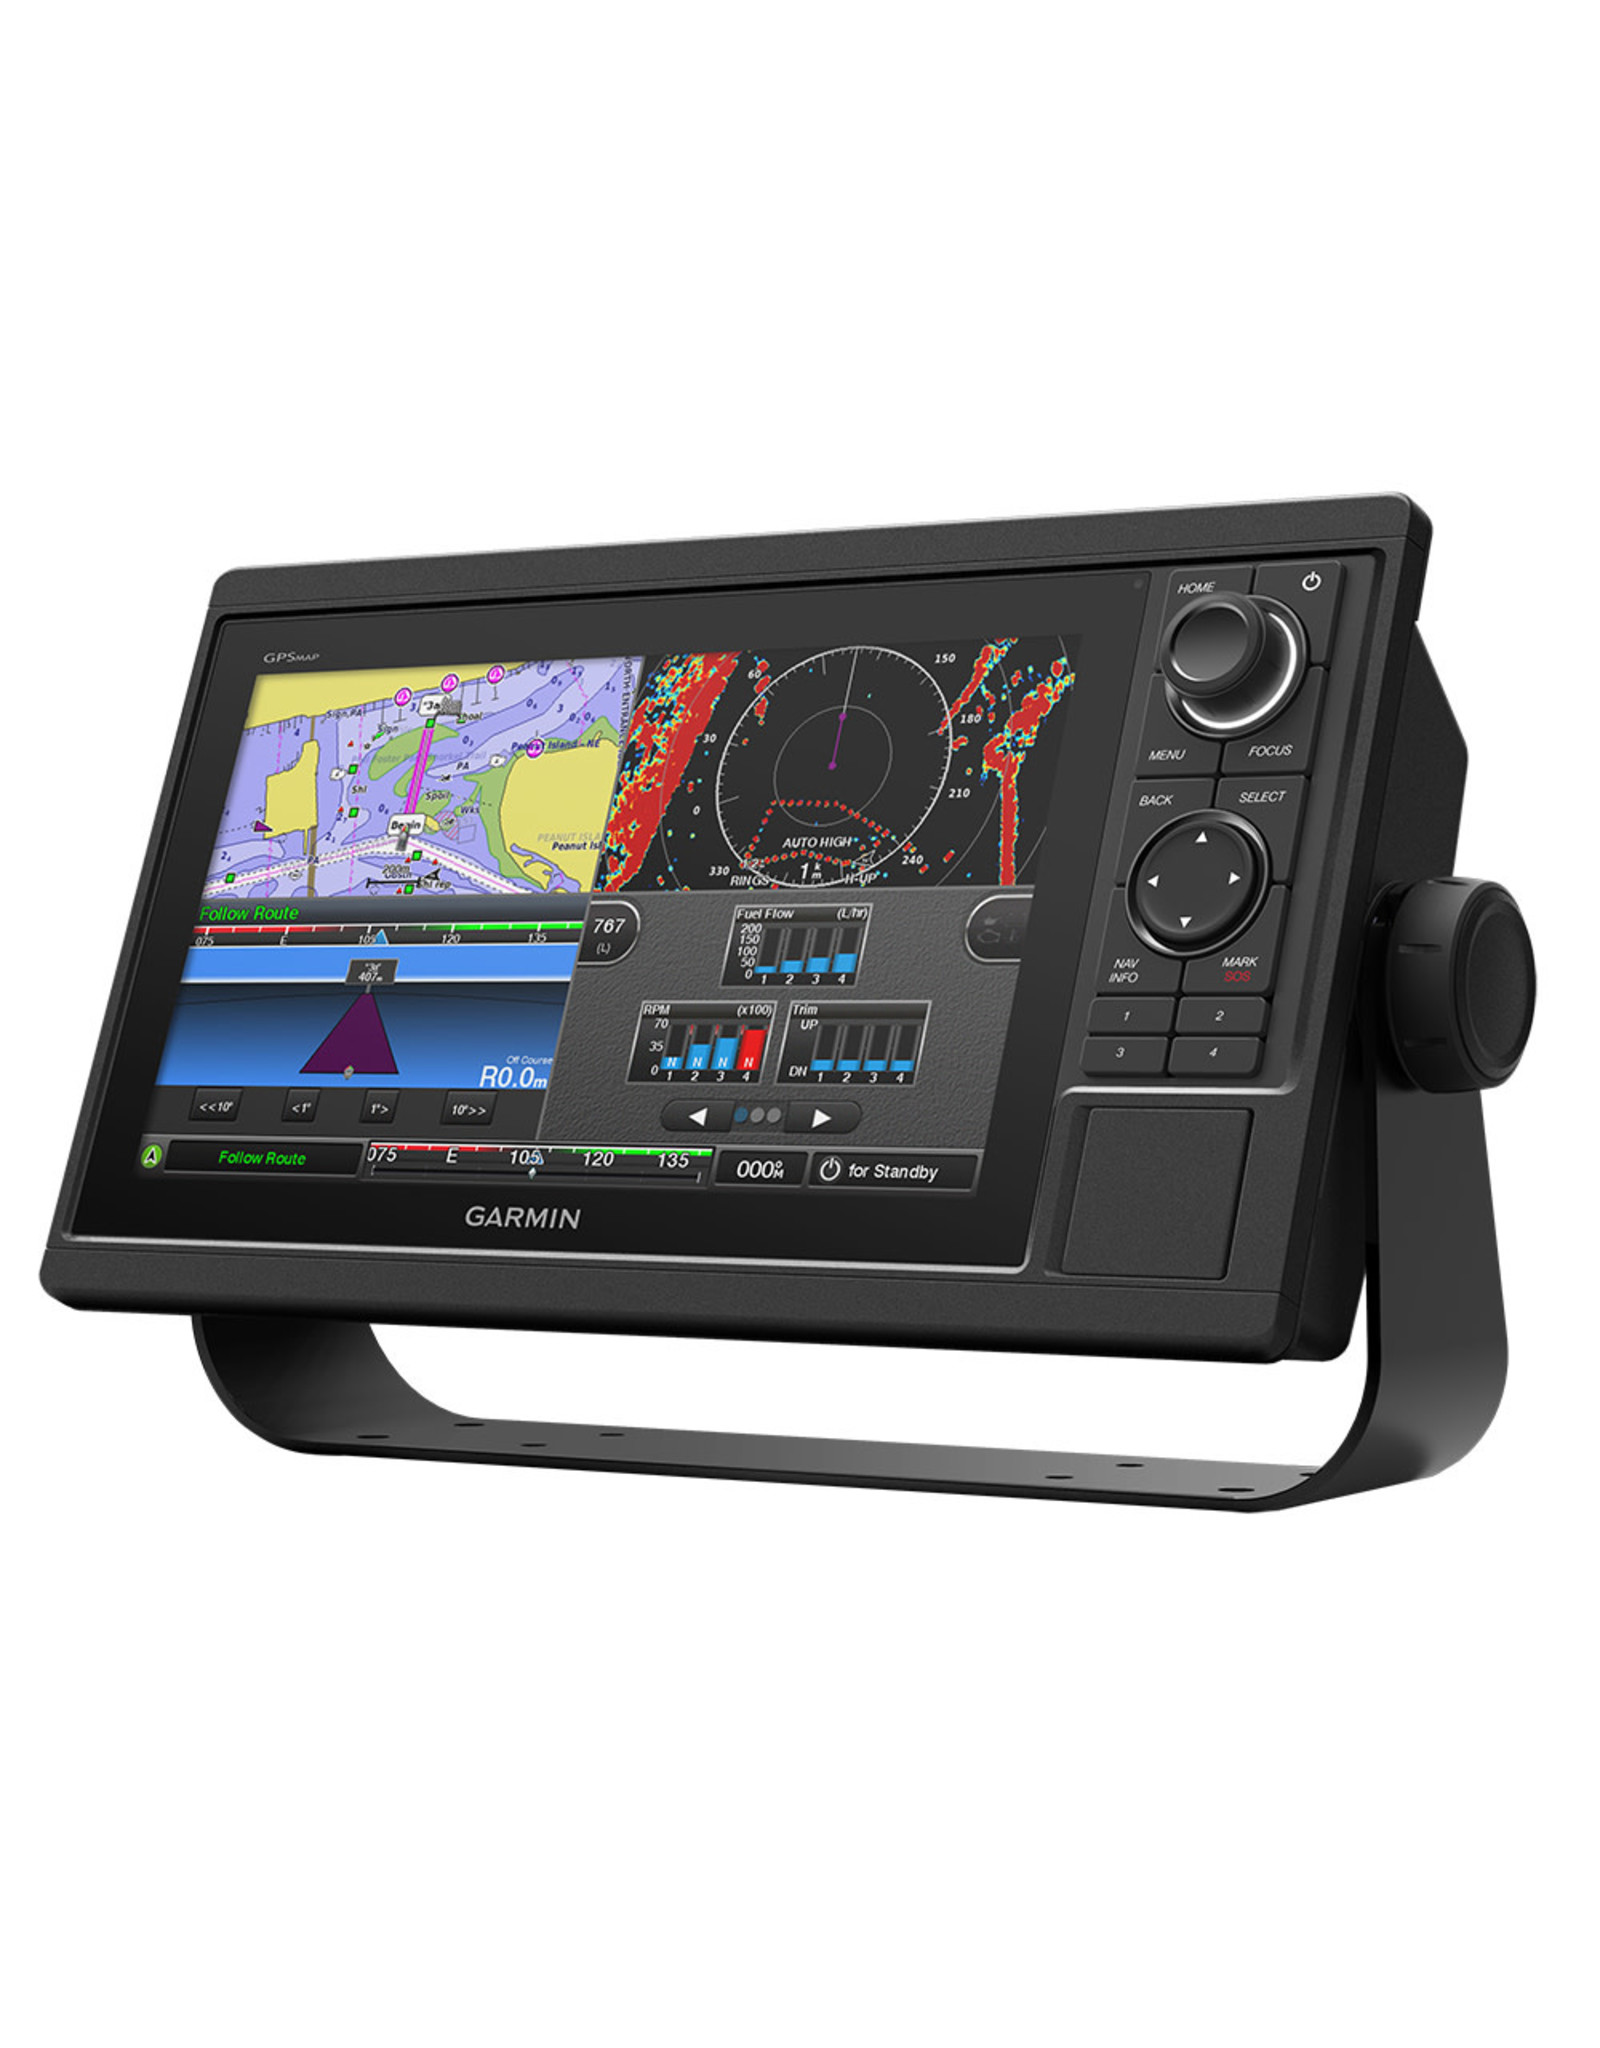 Garmin GPSMAP® 1022xsv Keyed Networking Combo Worldwide - No Transducer